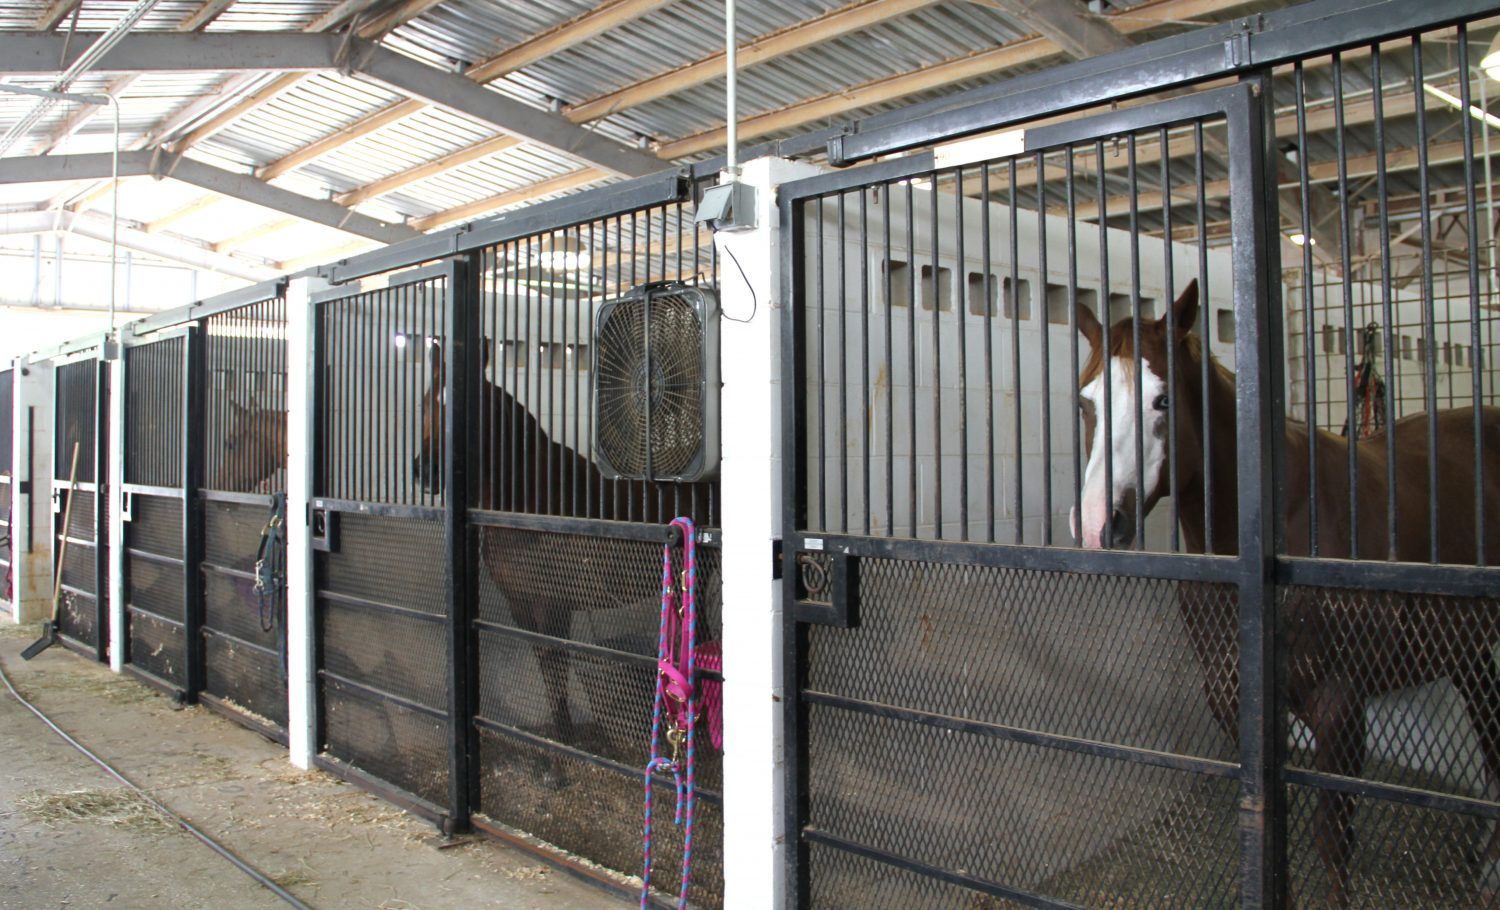 The Southeastern Livestock Pavilion in Ocala is offering free stalls Thursday October 6 for horse owners to protect their horses from Hurricane Matthew. Horse owners came from different parts of Florida to make sure their horses are safe. (Cassandra Alamilla/WUFT News)